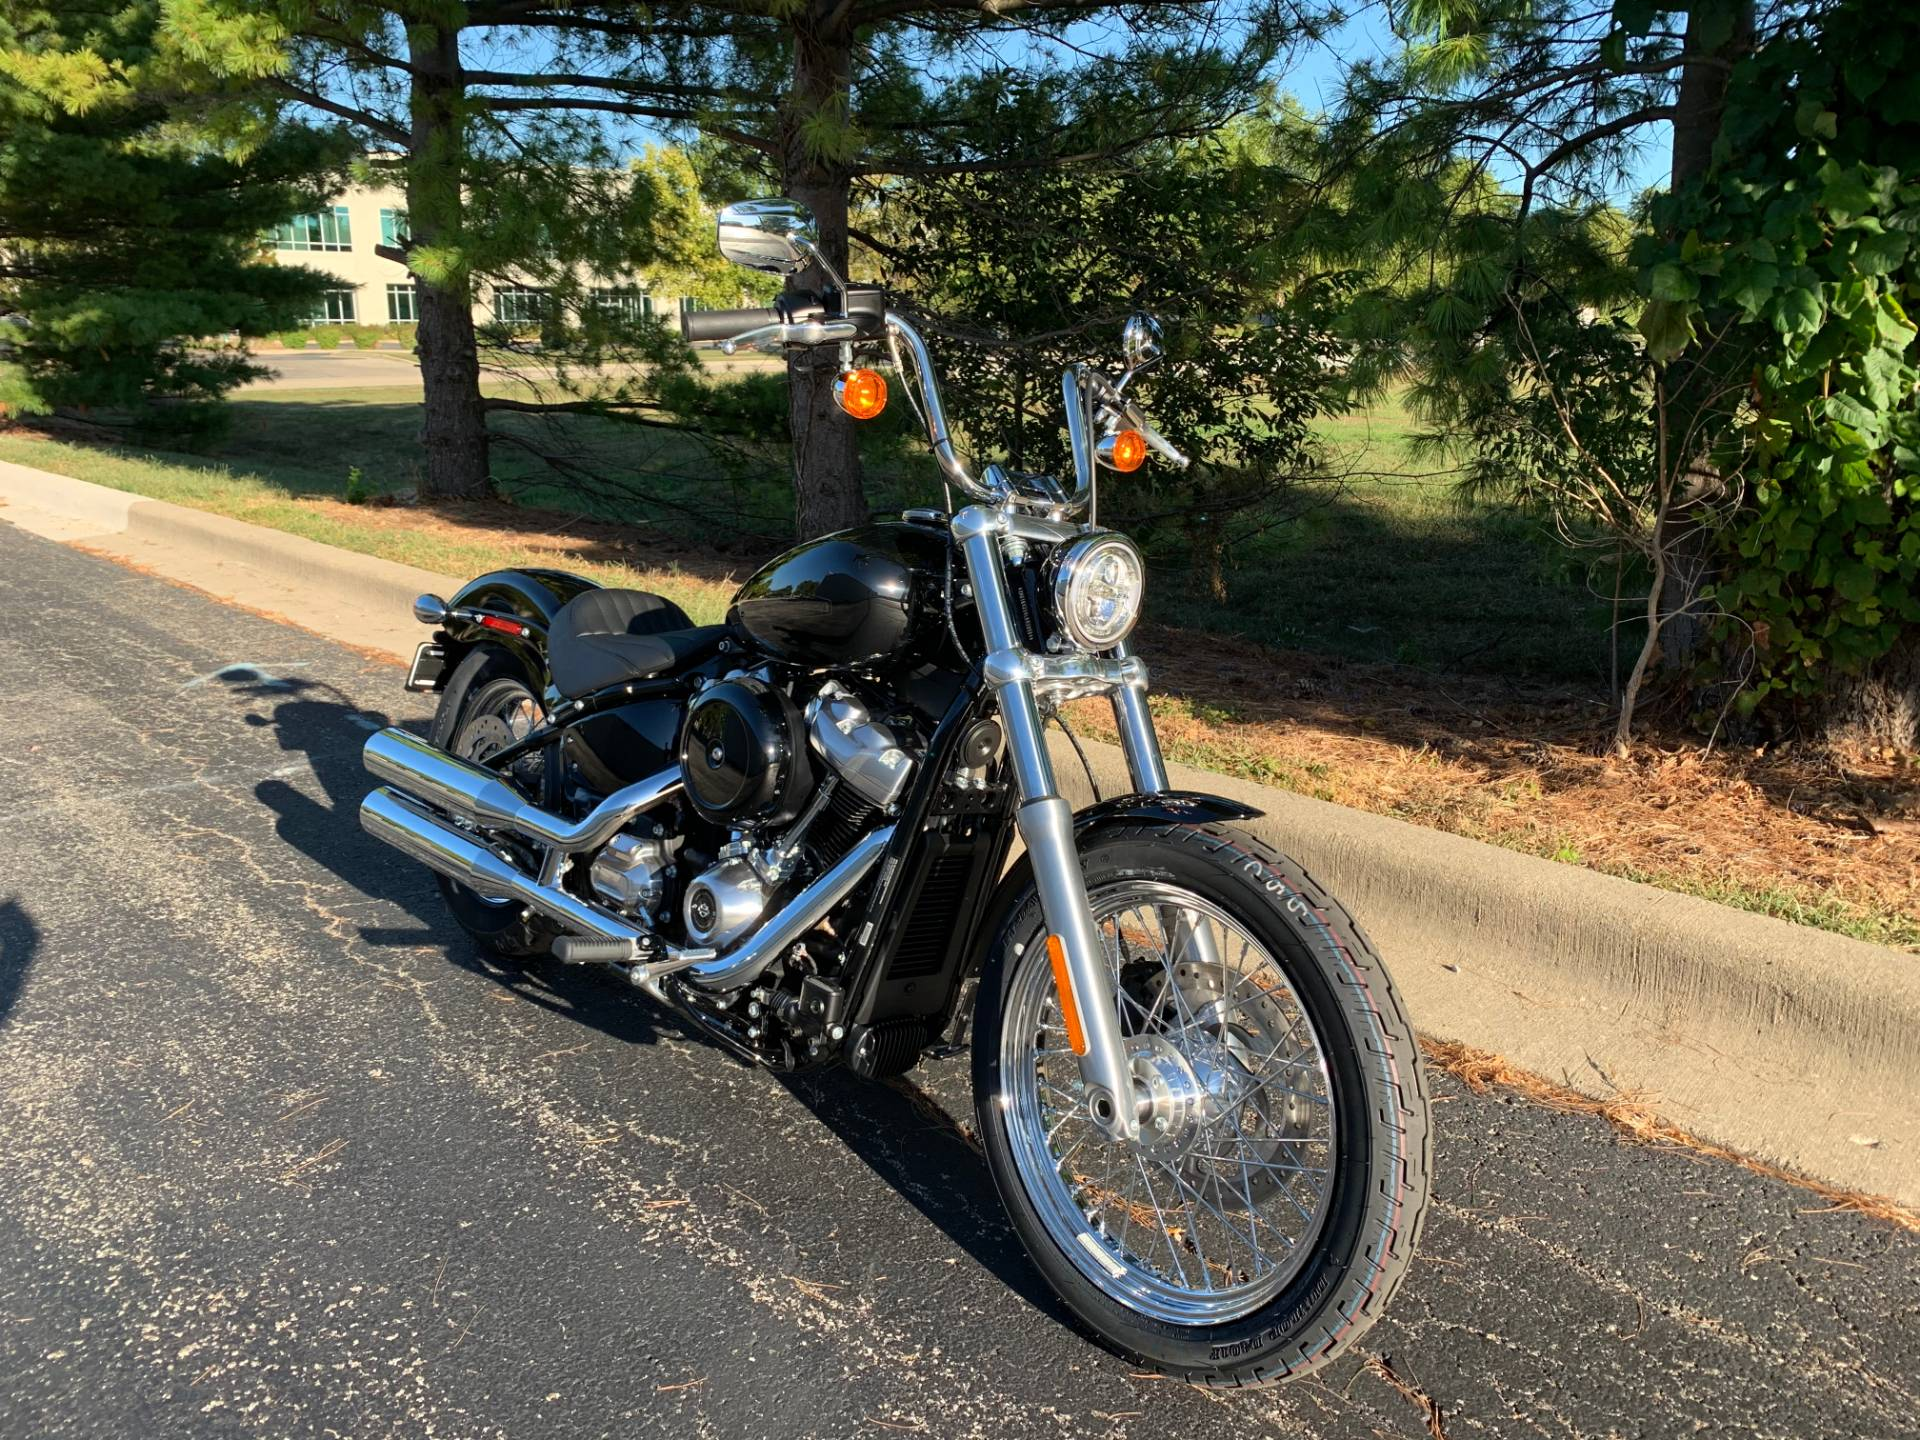 2020 Harley-Davidson Softail Standard in Forsyth, Illinois - Photo 2